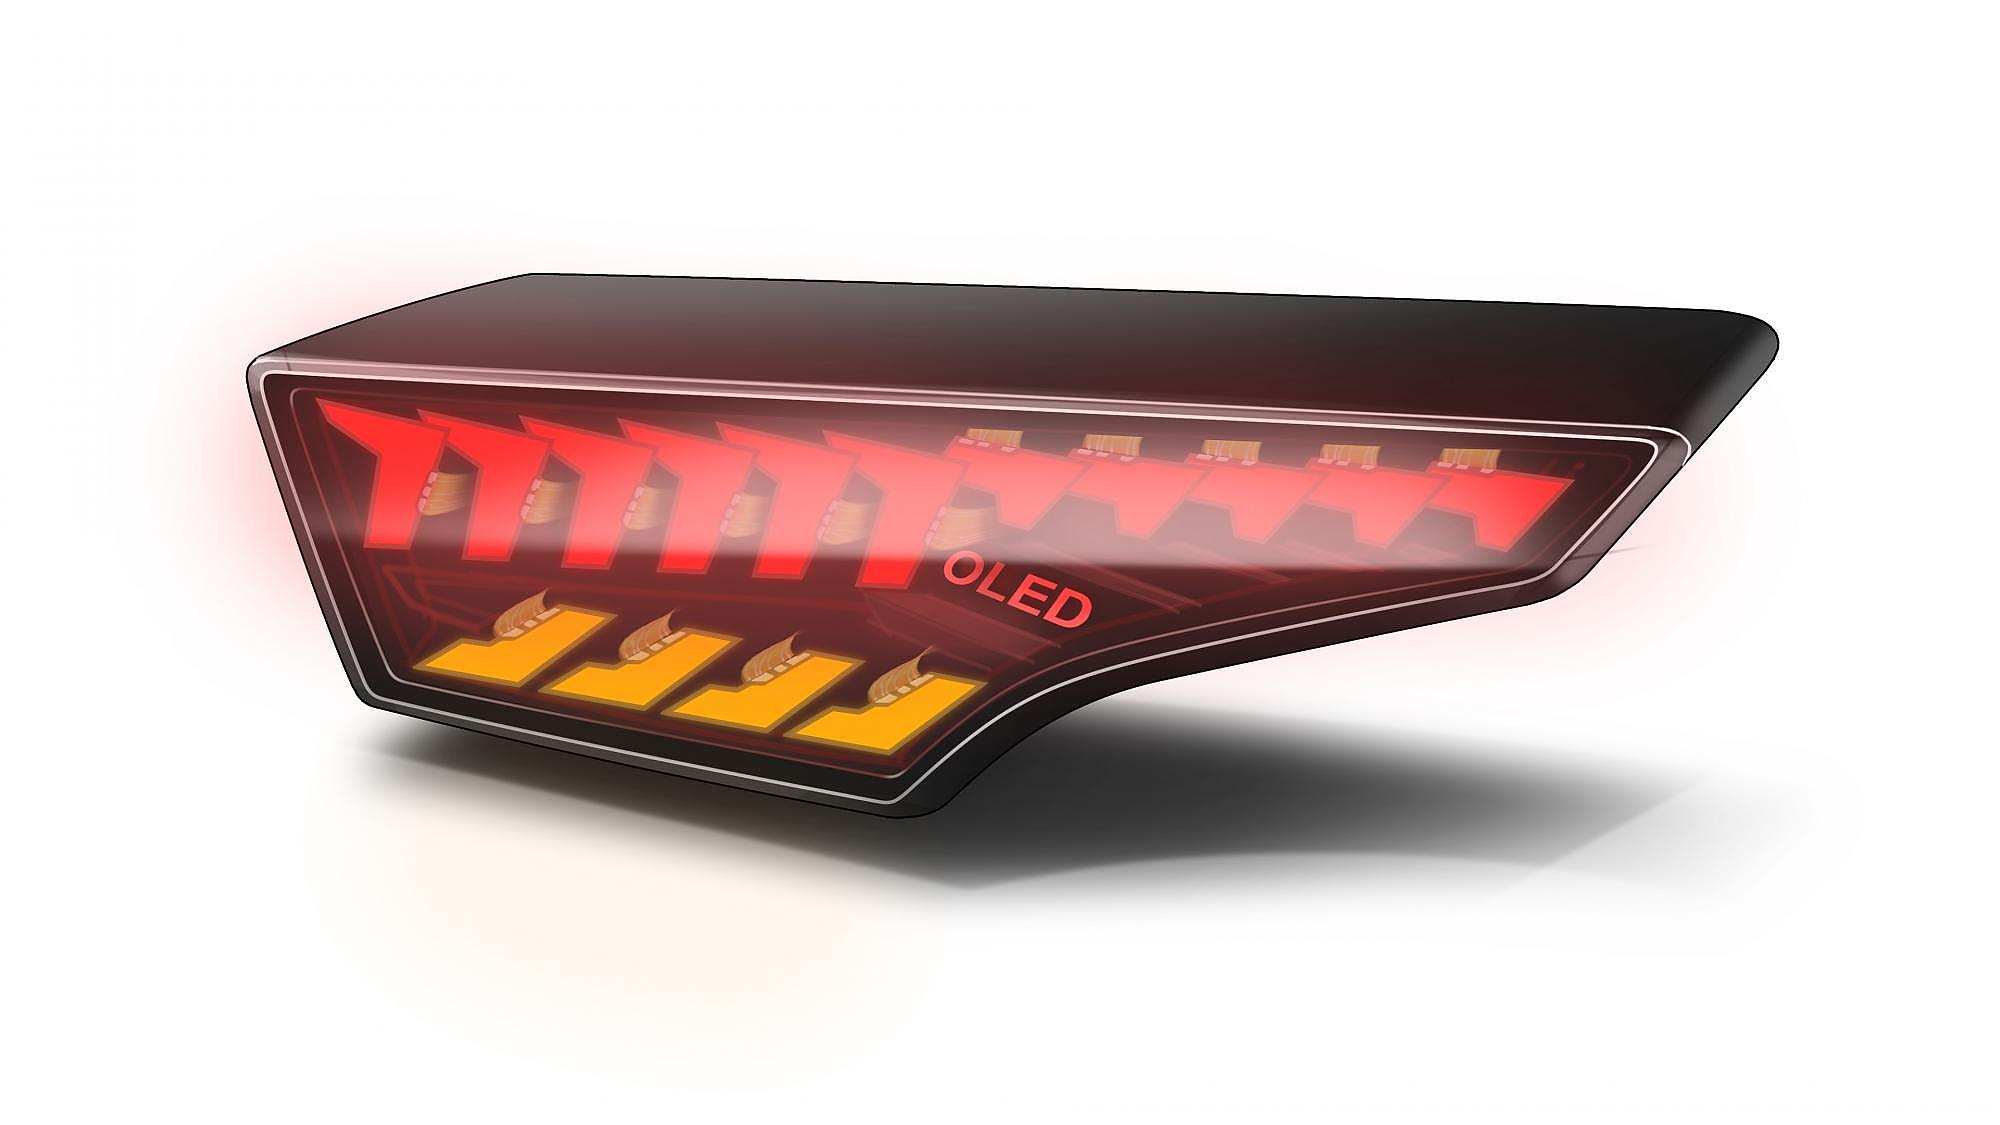 ACF Bonding OLED rear light